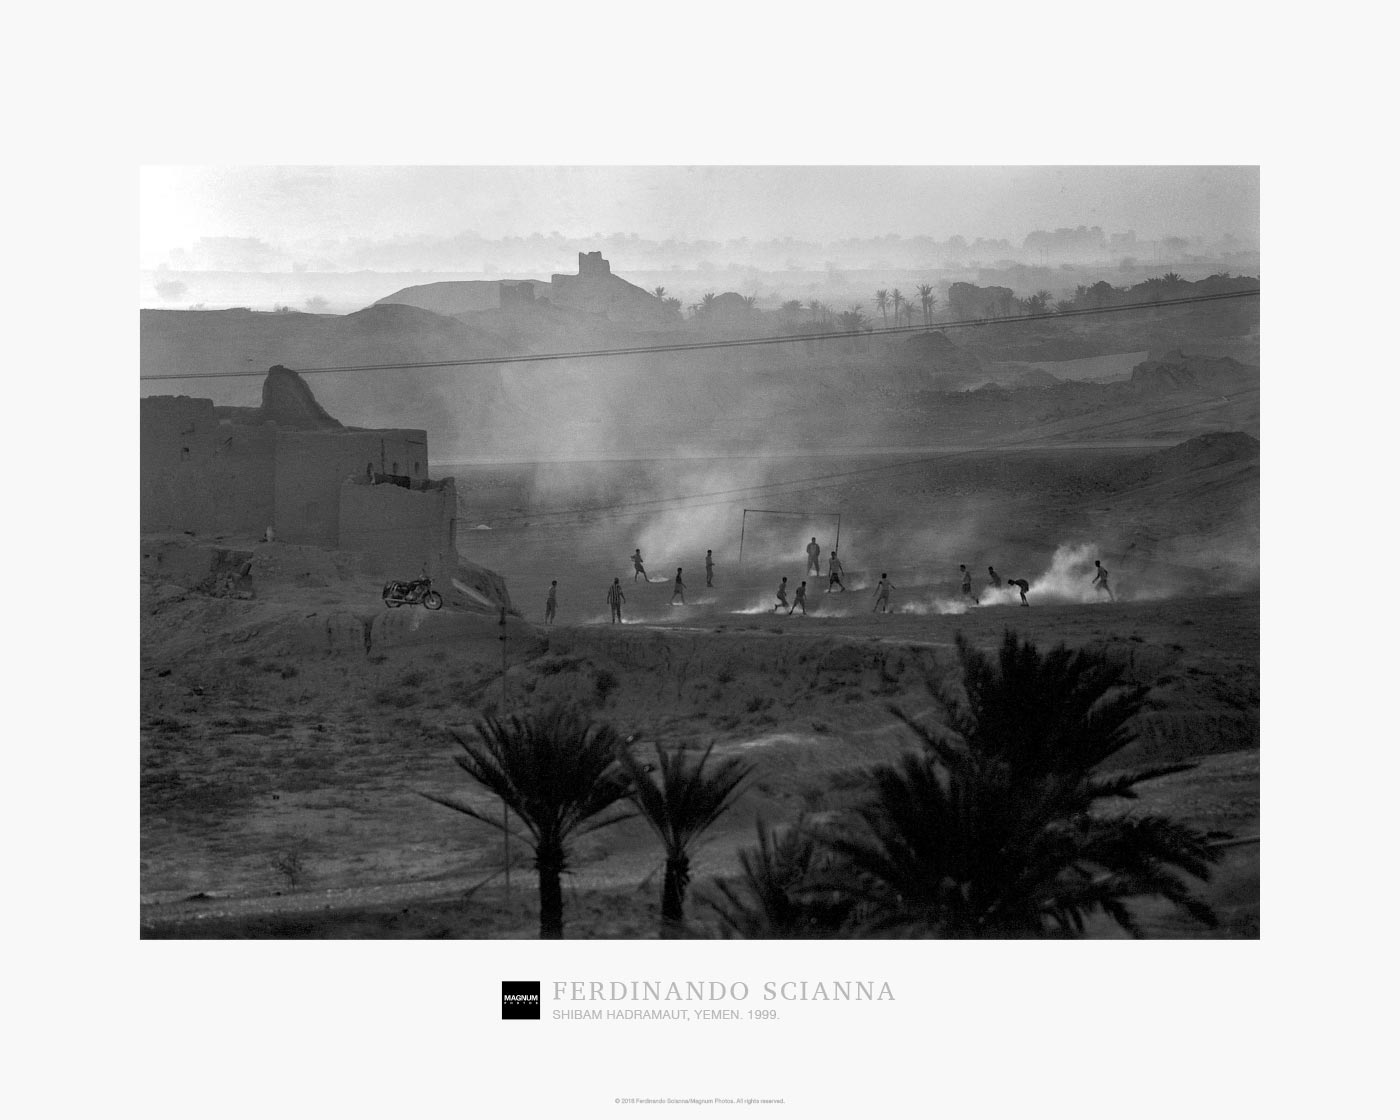 Magnum Collection Poster: Shibam Hadramaut, Yemen. 1999.